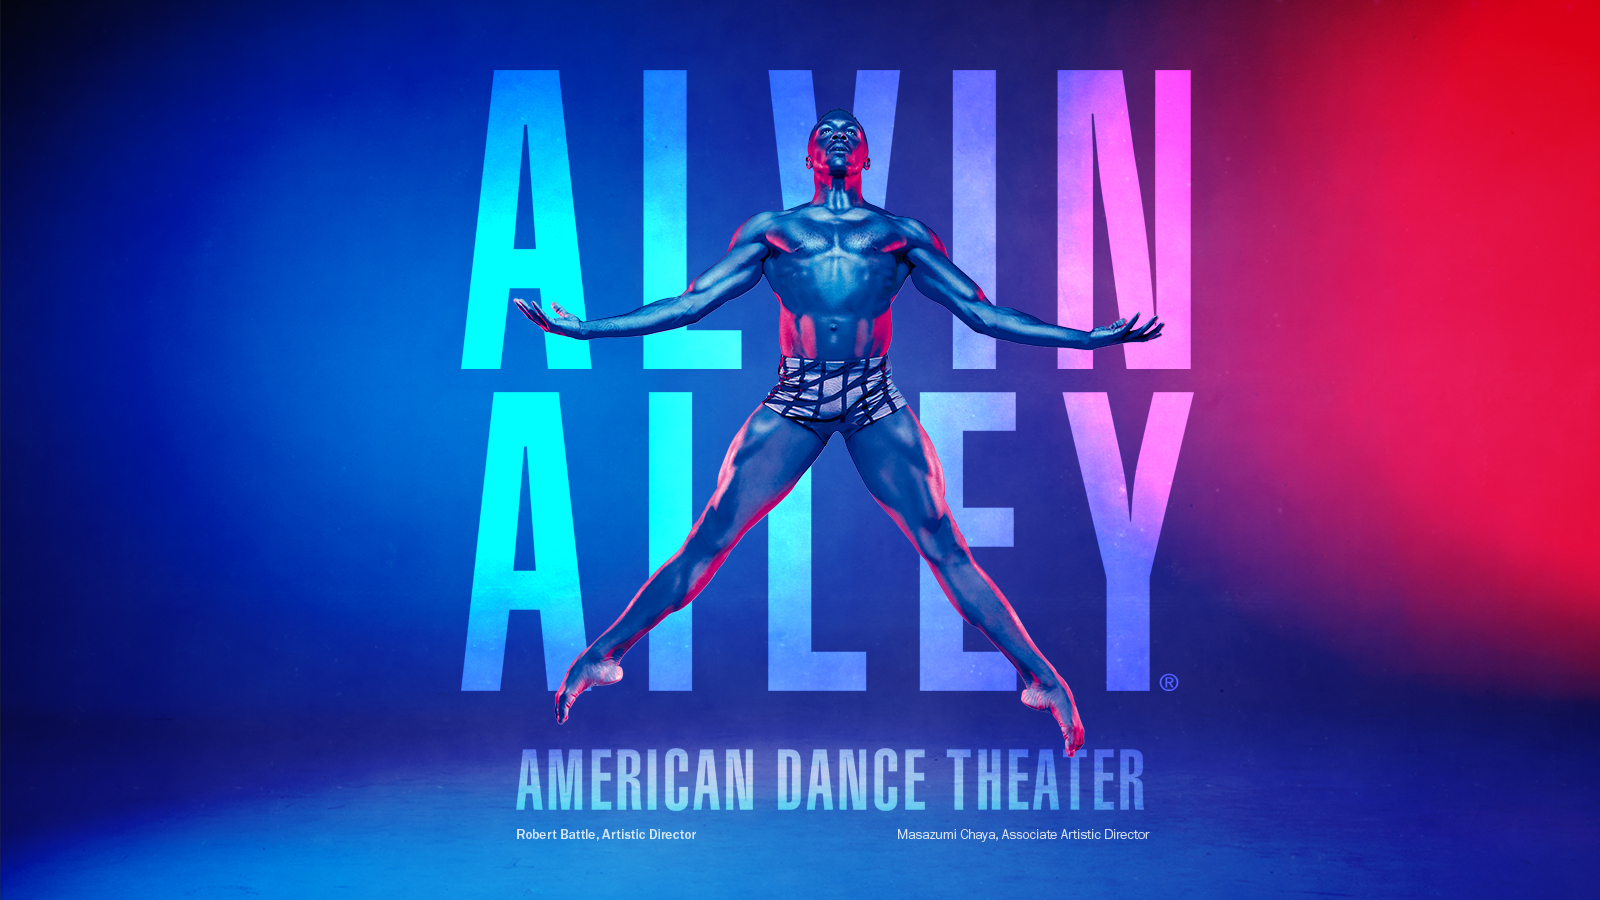 Alvin Ailey American Dance Theater. Dancer: Michael Jackson Jr. Photo: Andrew Eccles